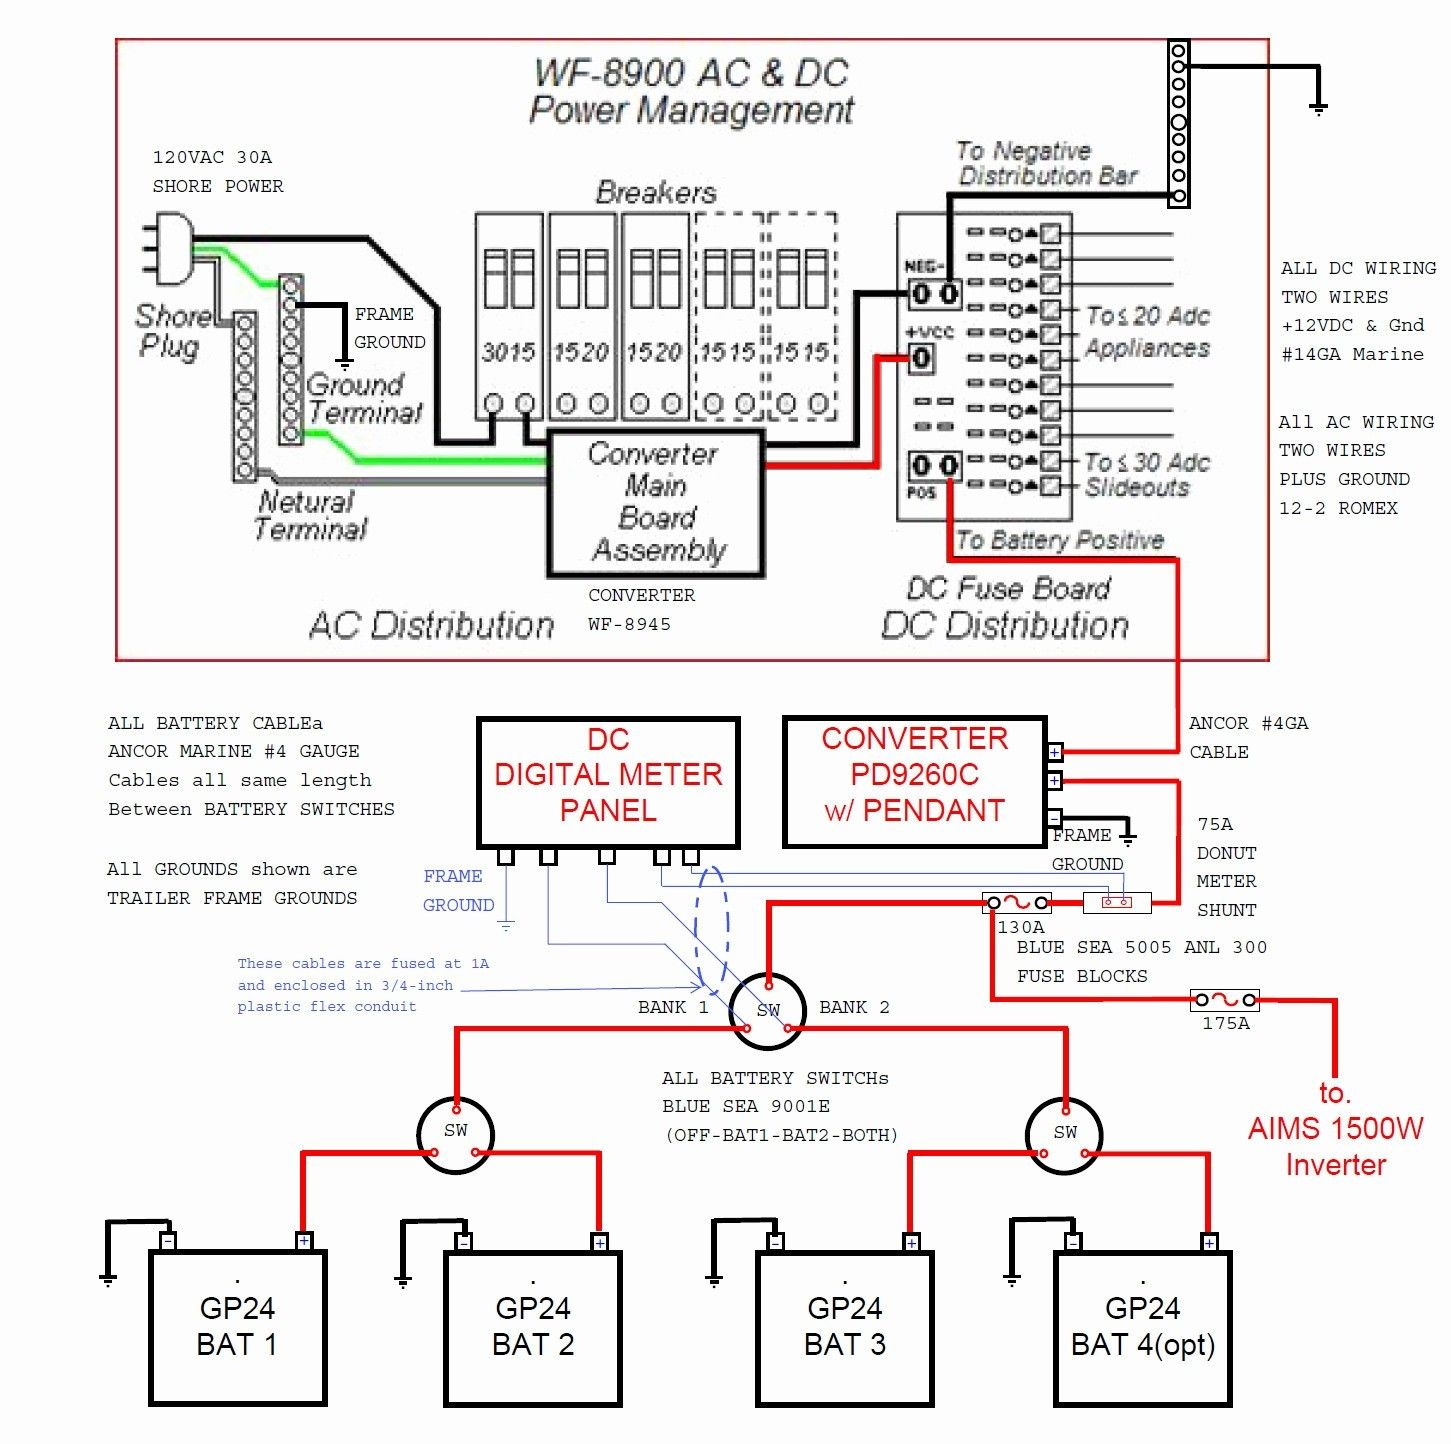 Rv Construction Schematics - Wiring Diagram Data on